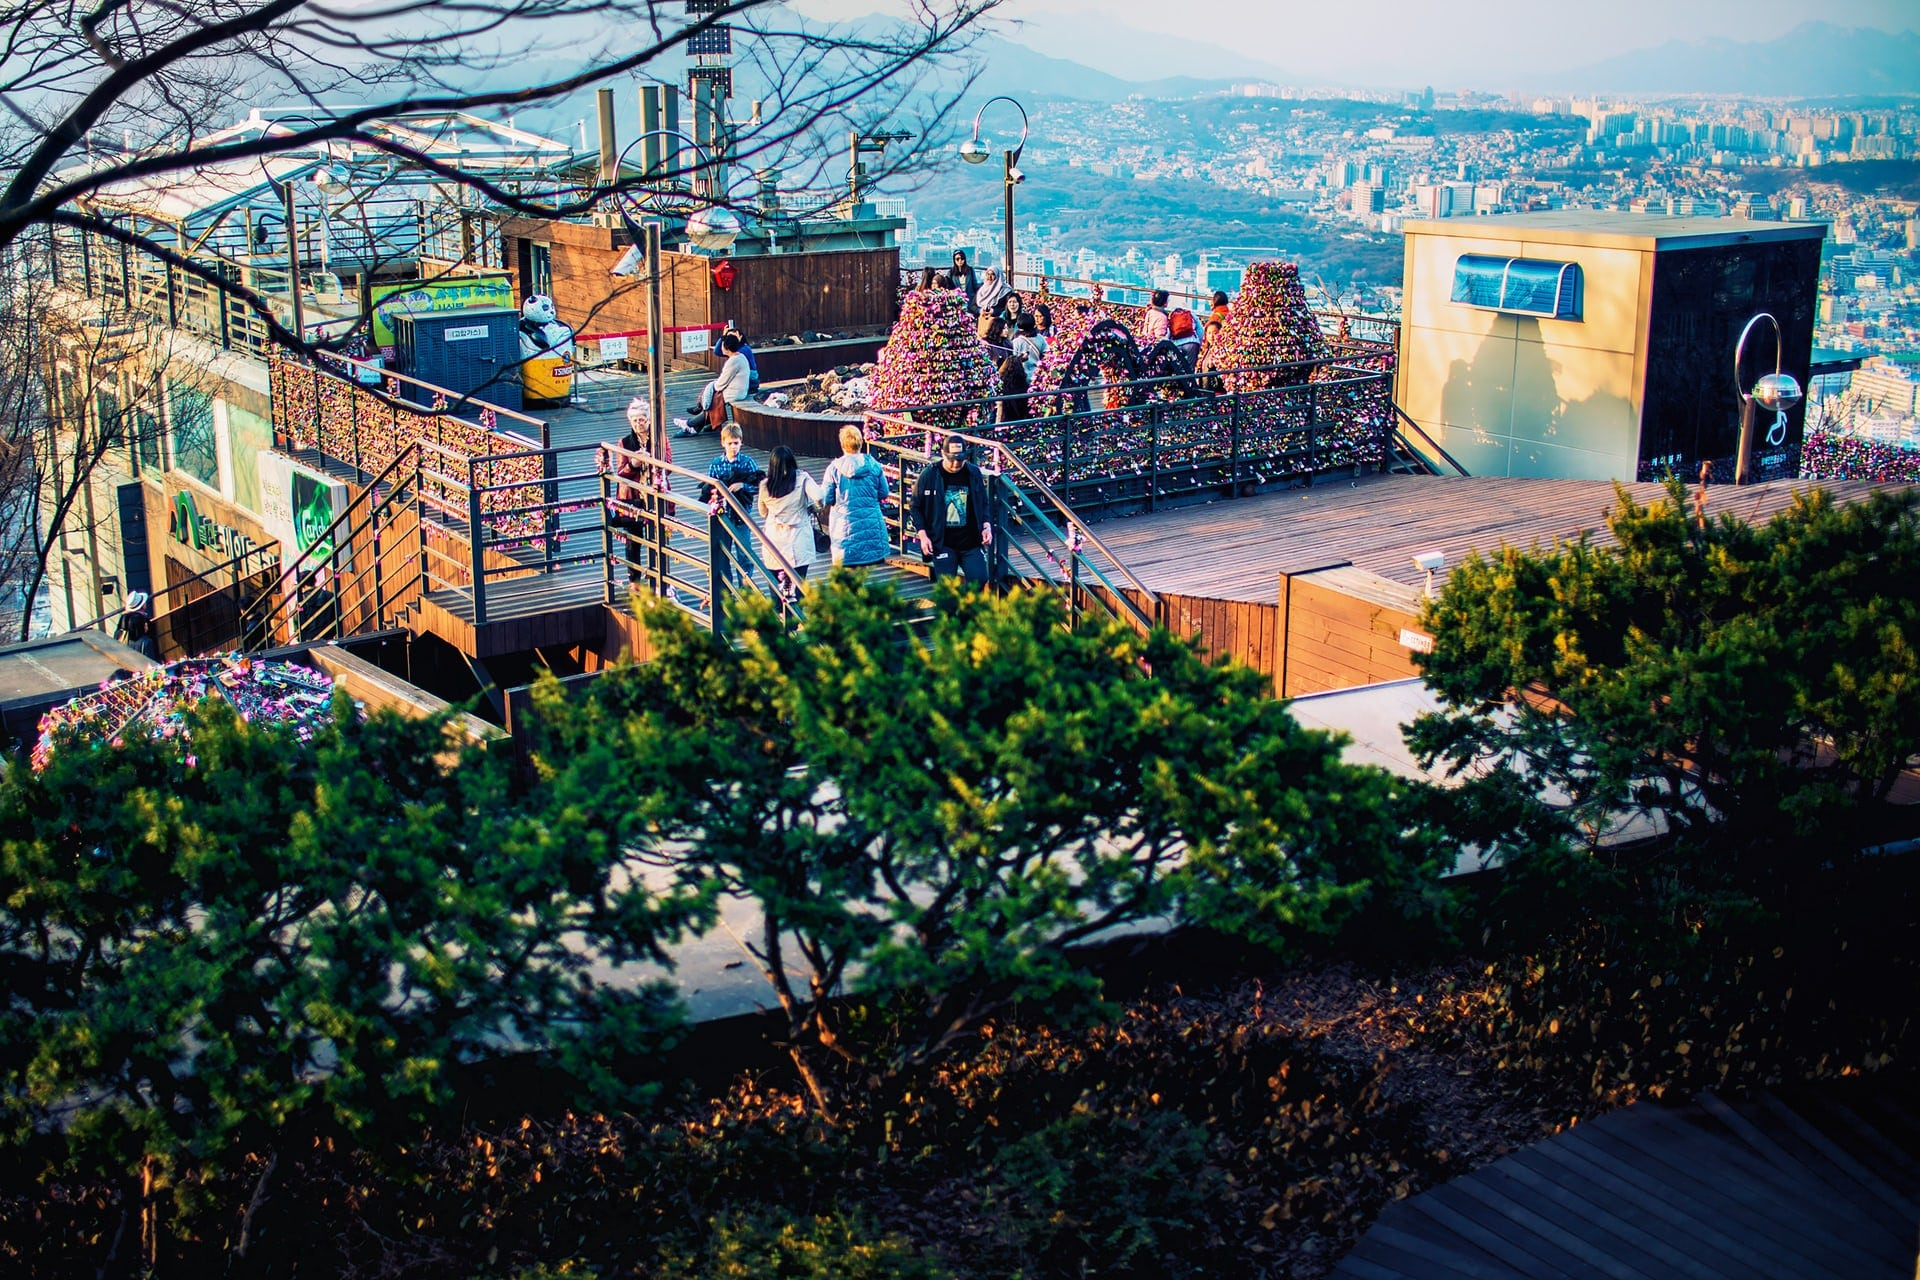 Love Lock observation deck area with view of Seoul City in the background